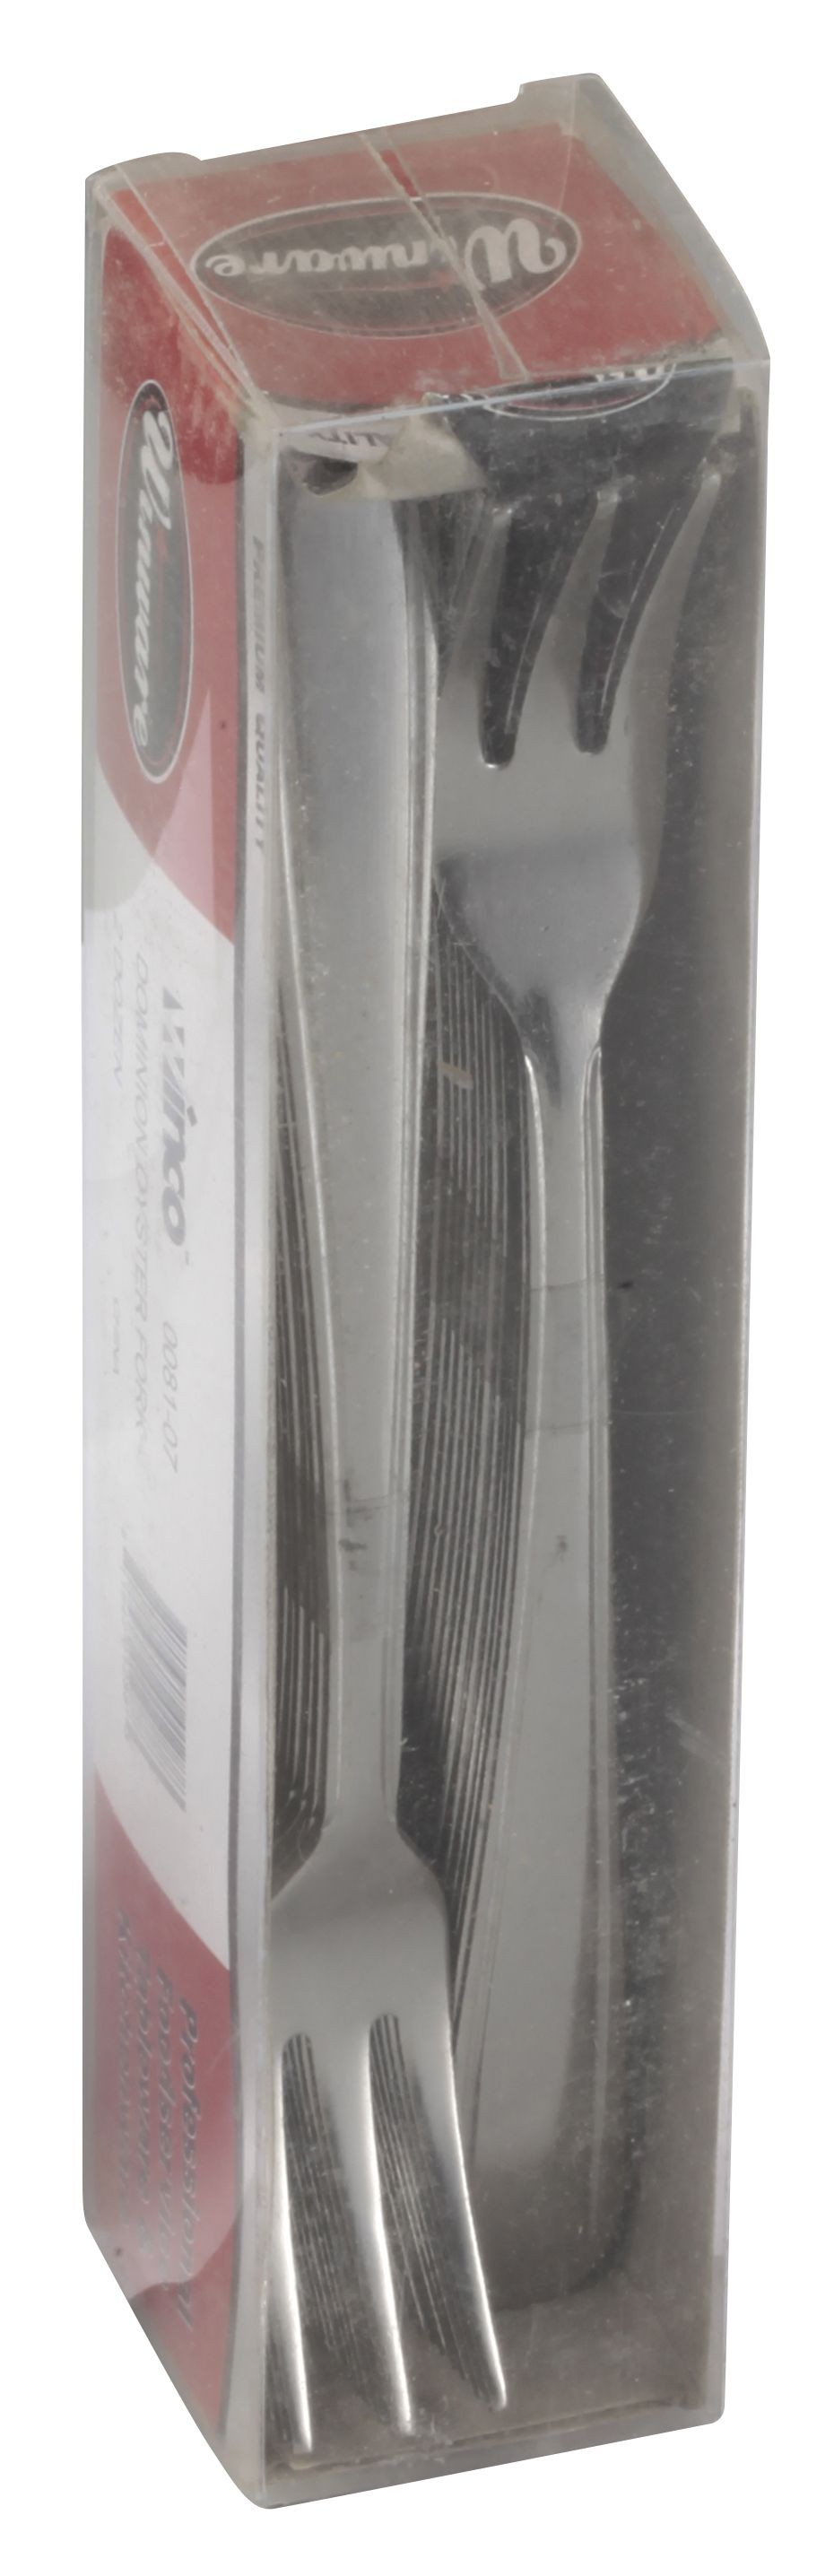 Winco 0081-07 Dominion Medium Weight 18/0 Oyster Fork In Clear View Pack (24/Pack)